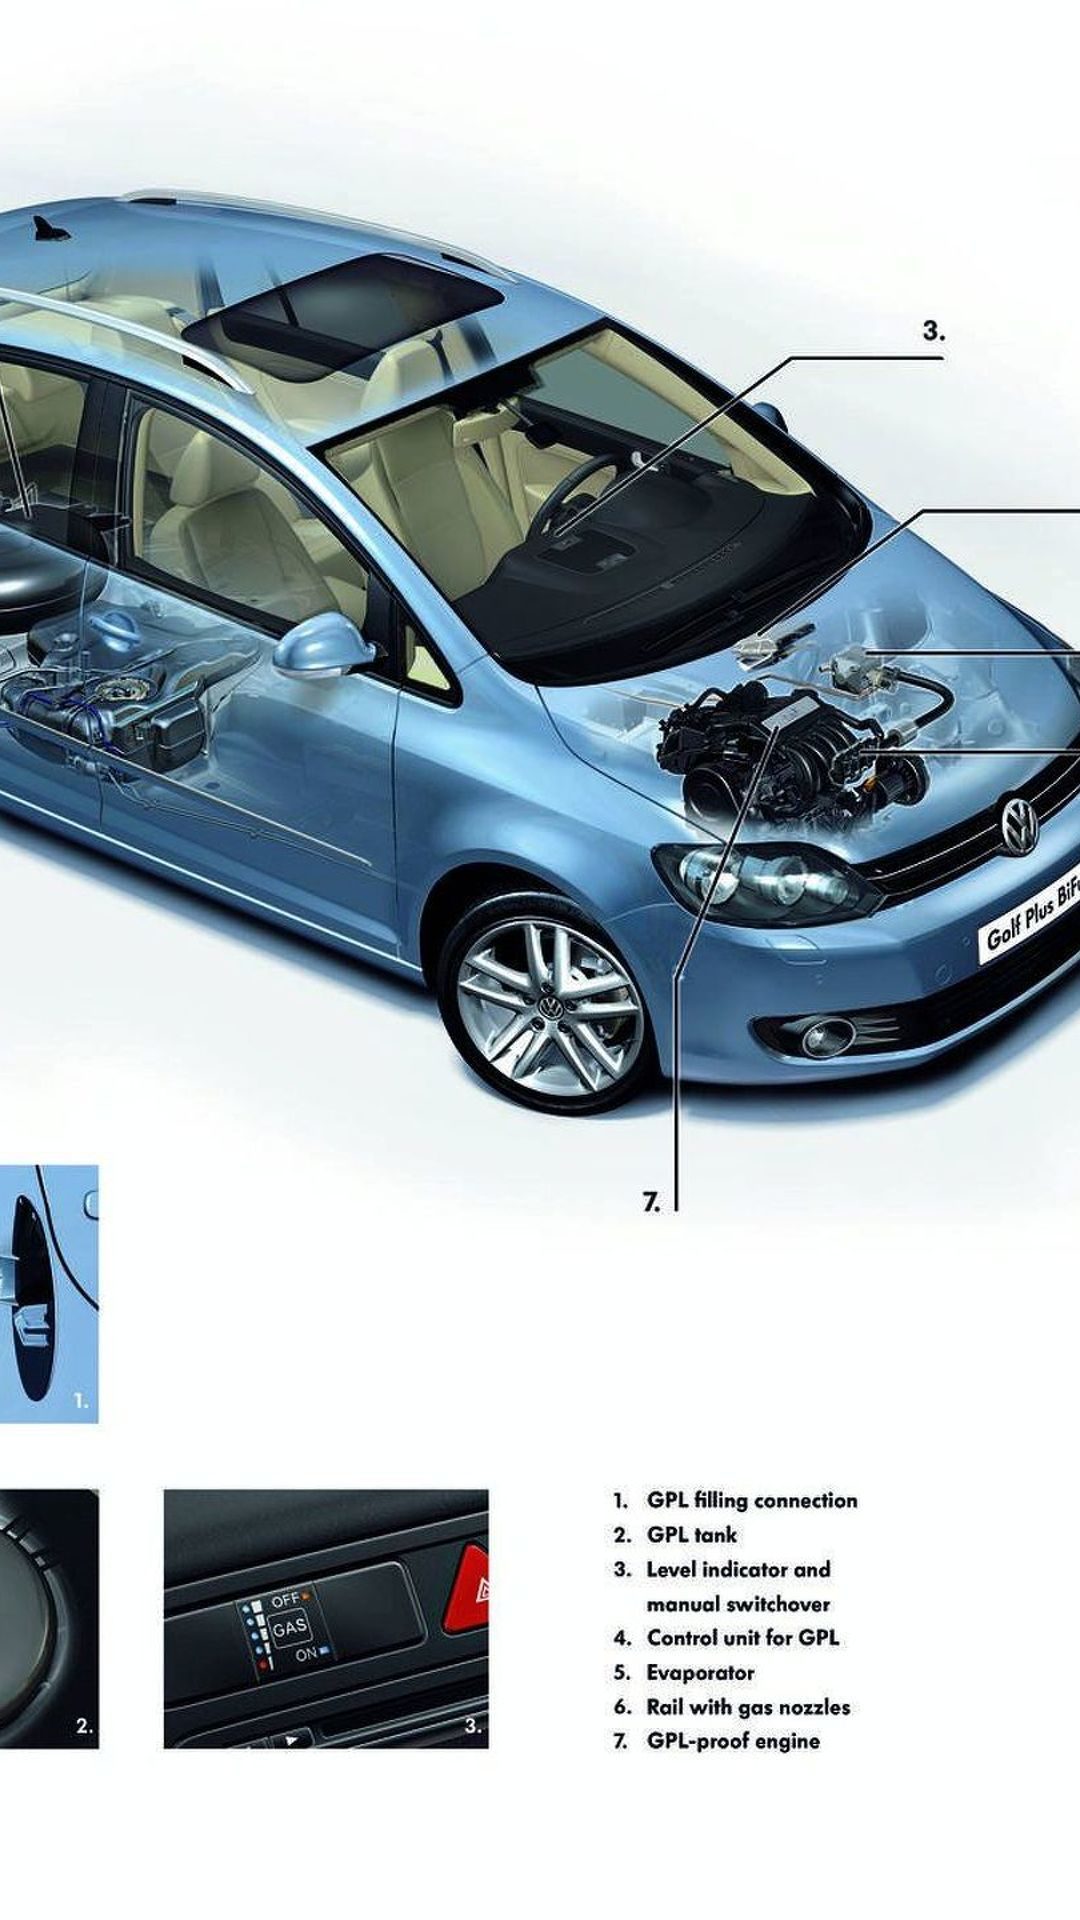 VW Reveals Golf Plus BiFuel - LPG or Petrol